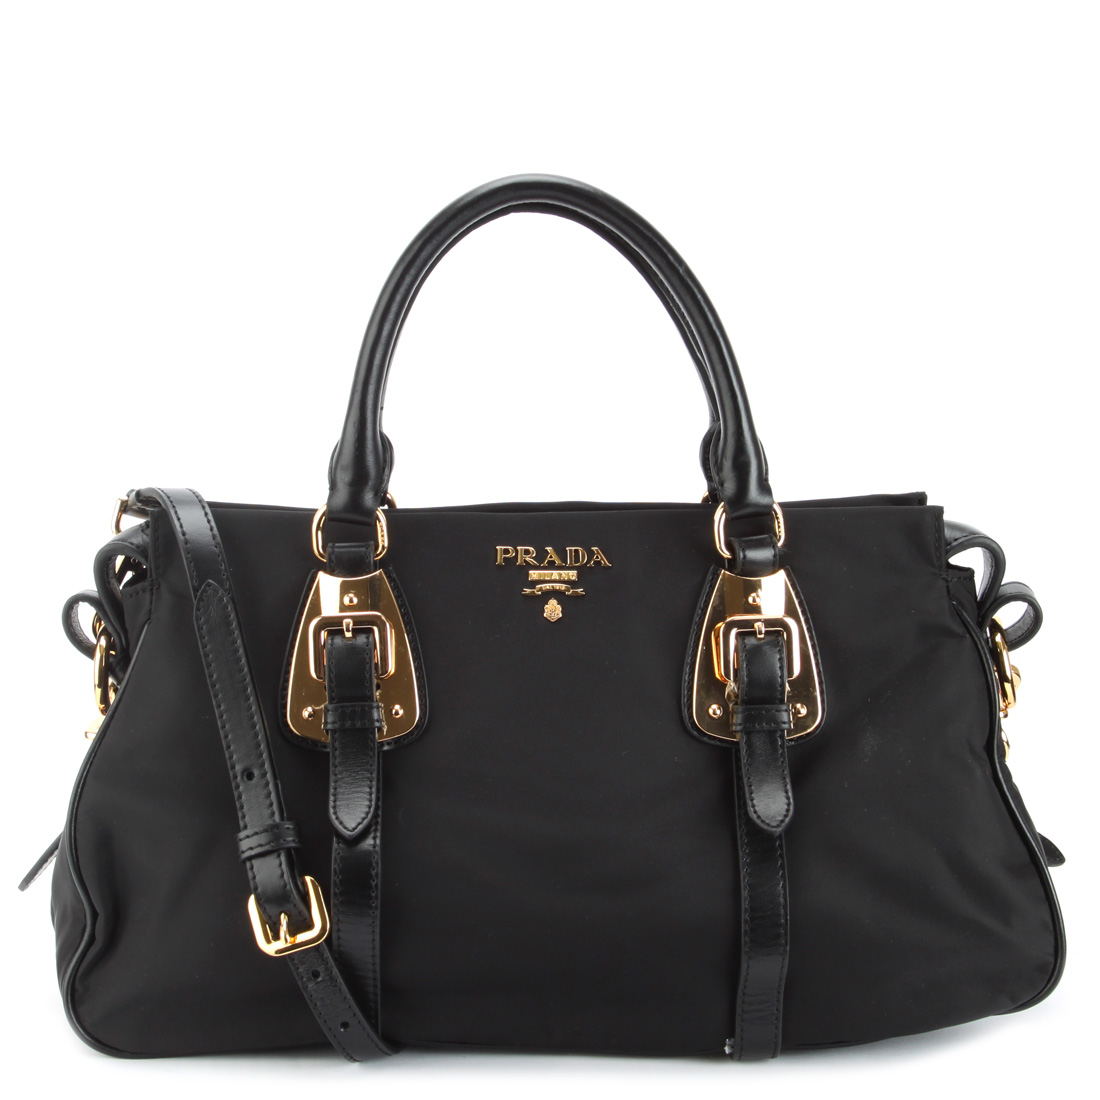 Prada Handbag Whole